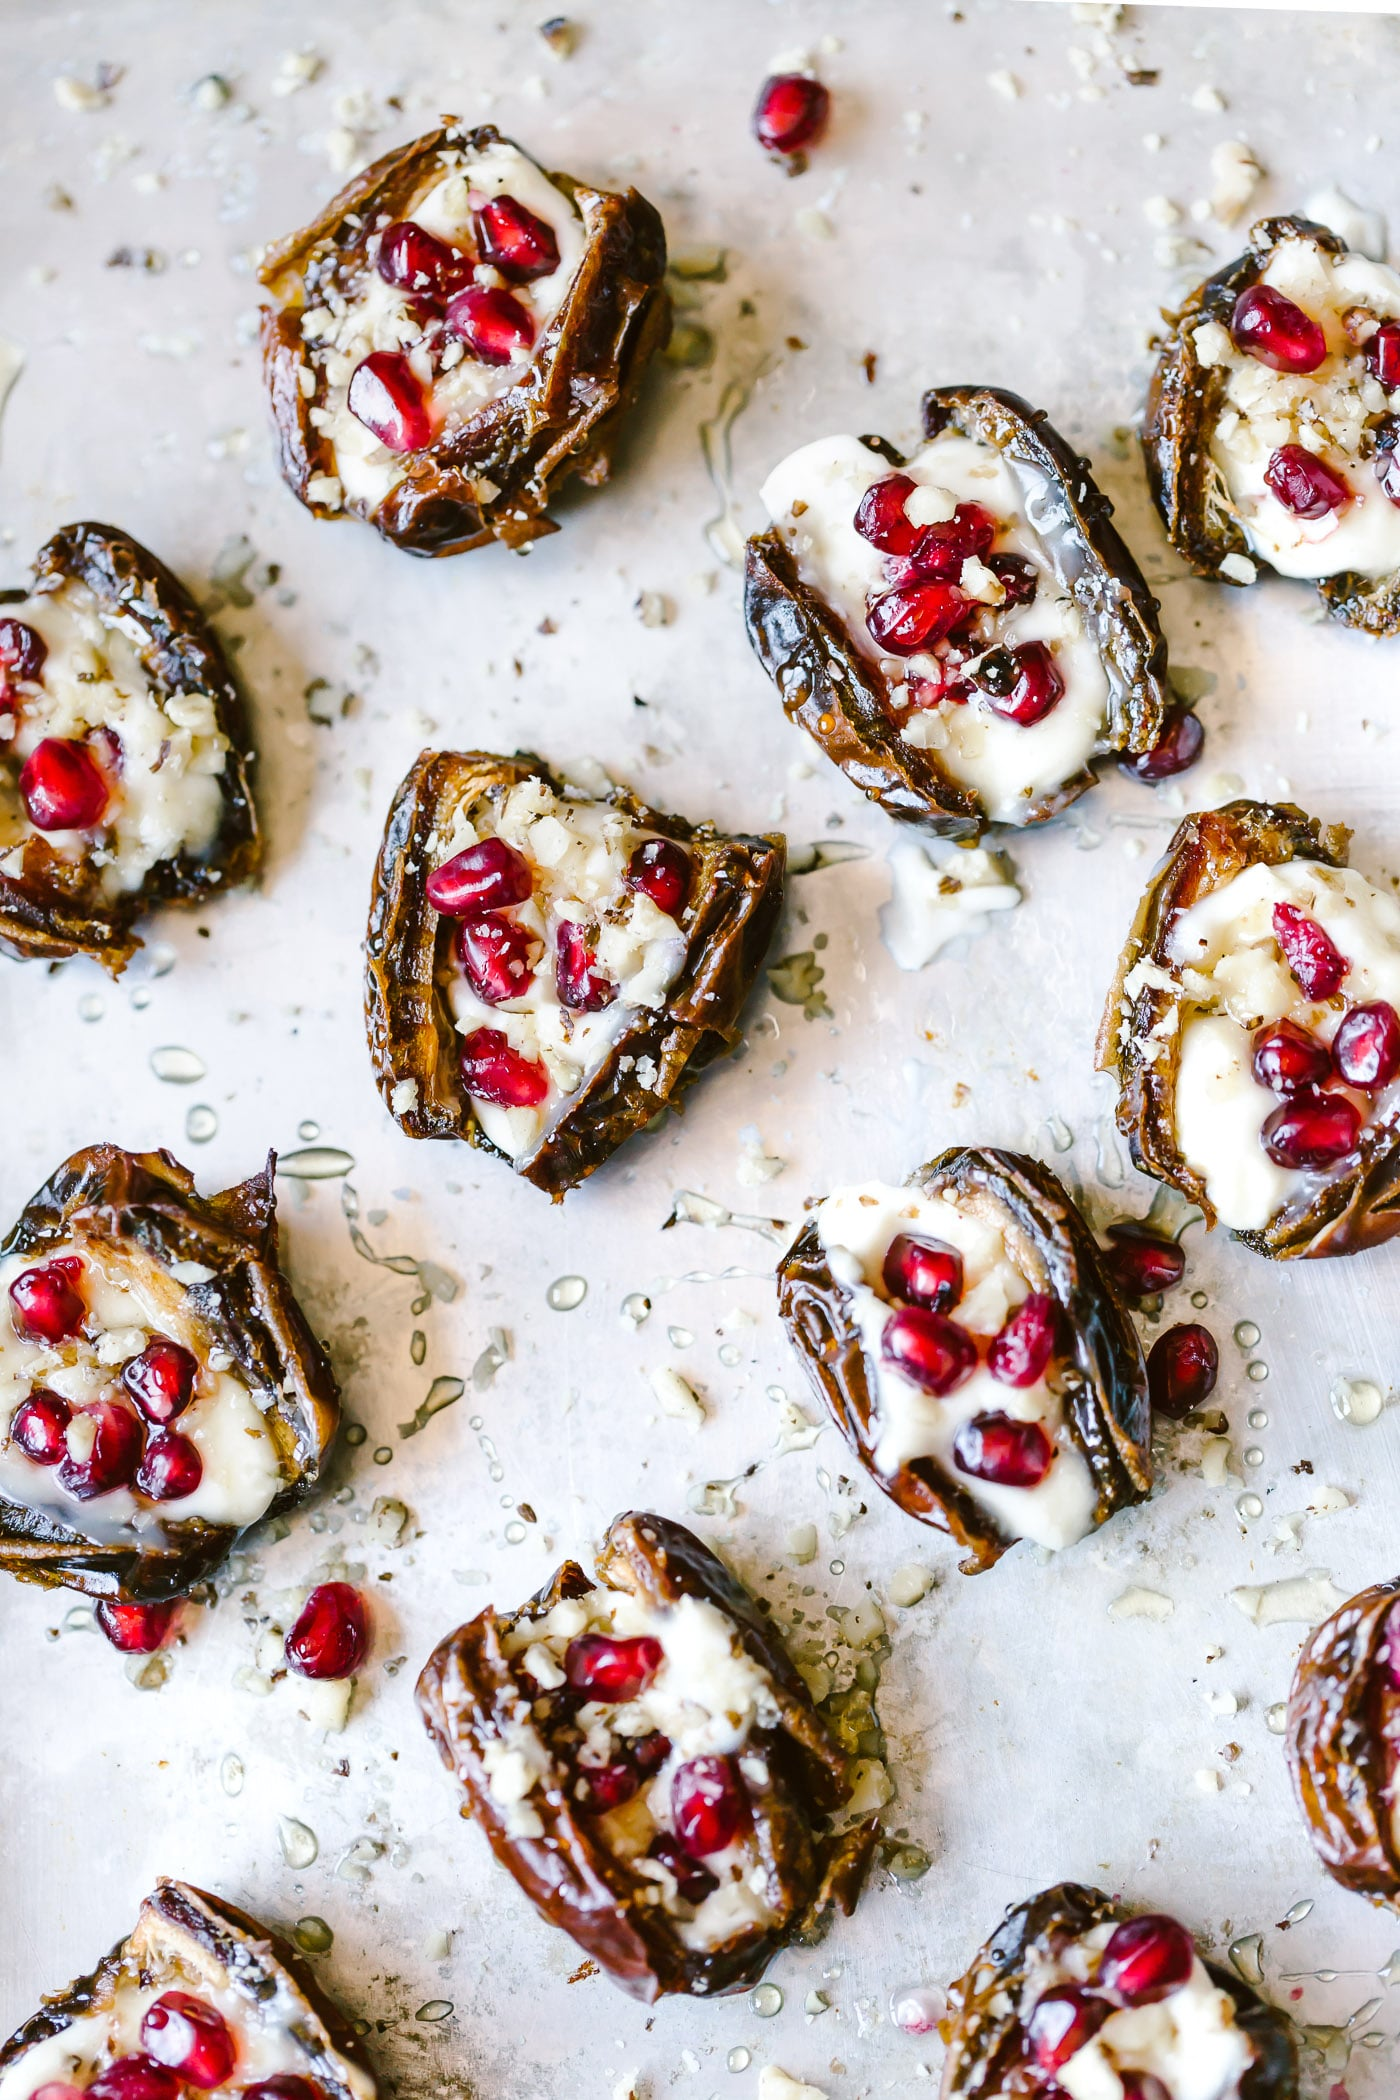 Mascarpone Stuffed Dates topped off with pomegranate arils photographed close up from the top view.